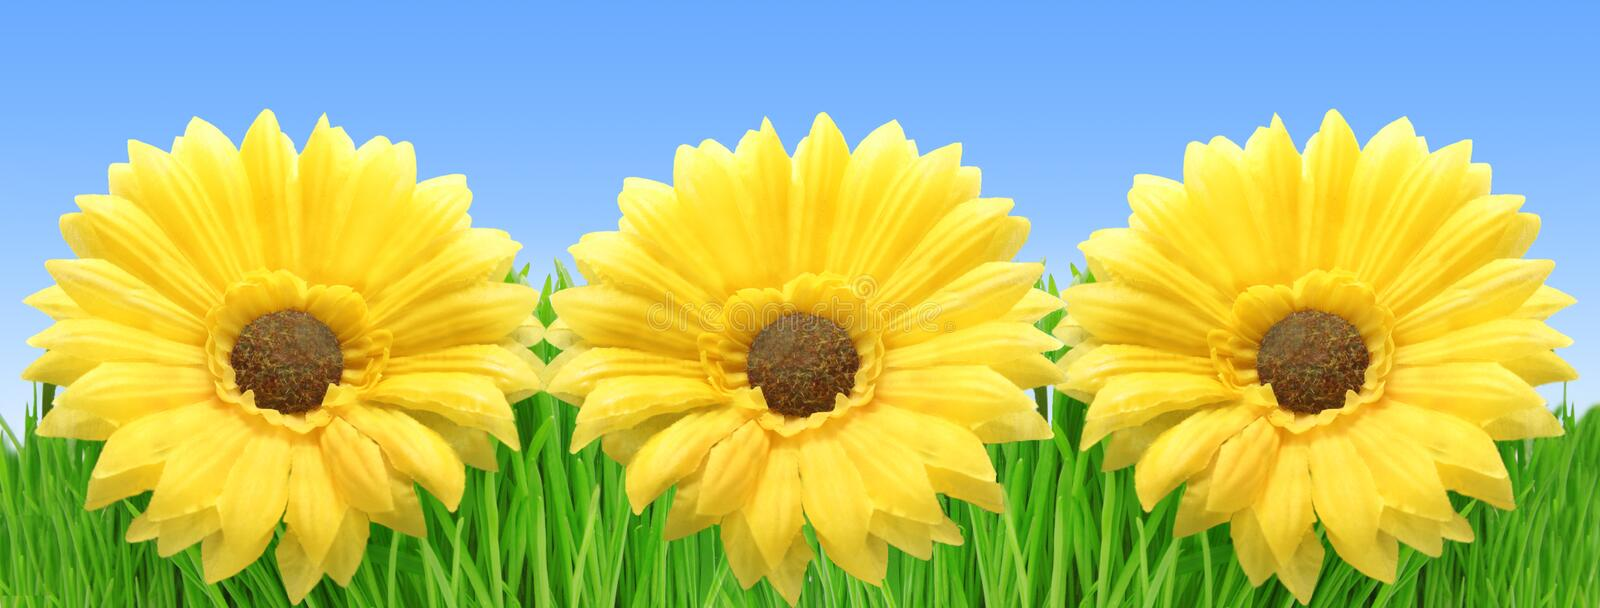 Download Grass And Flowers Stock Photos - Image: 24892143